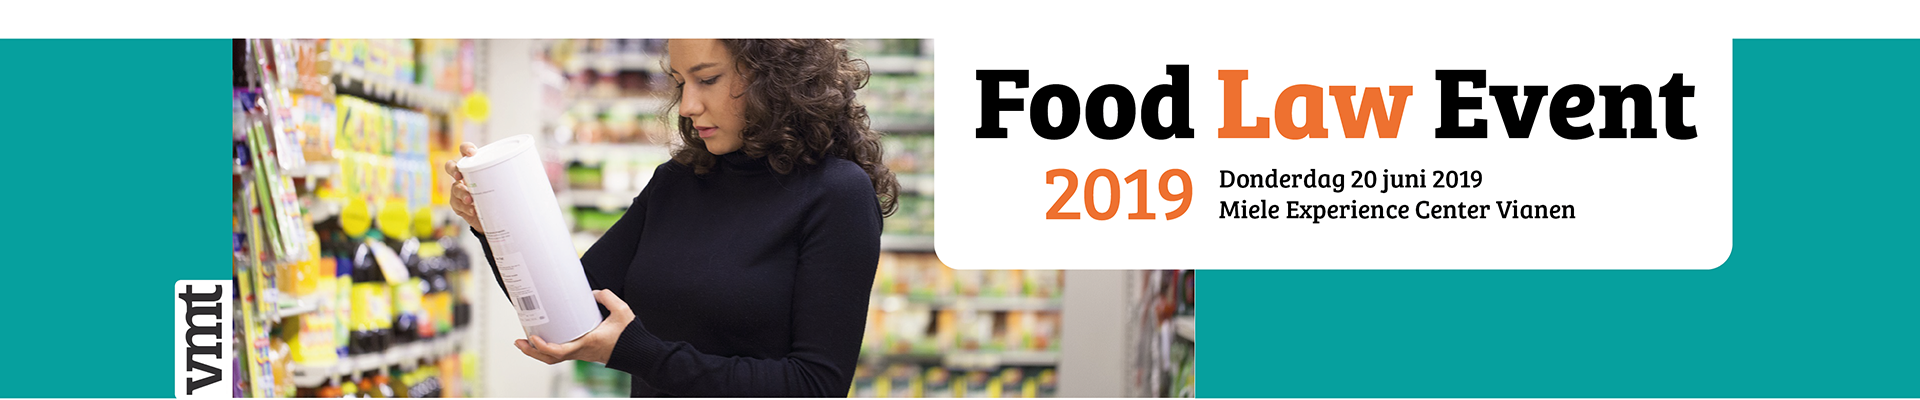 Food Law Event 2019